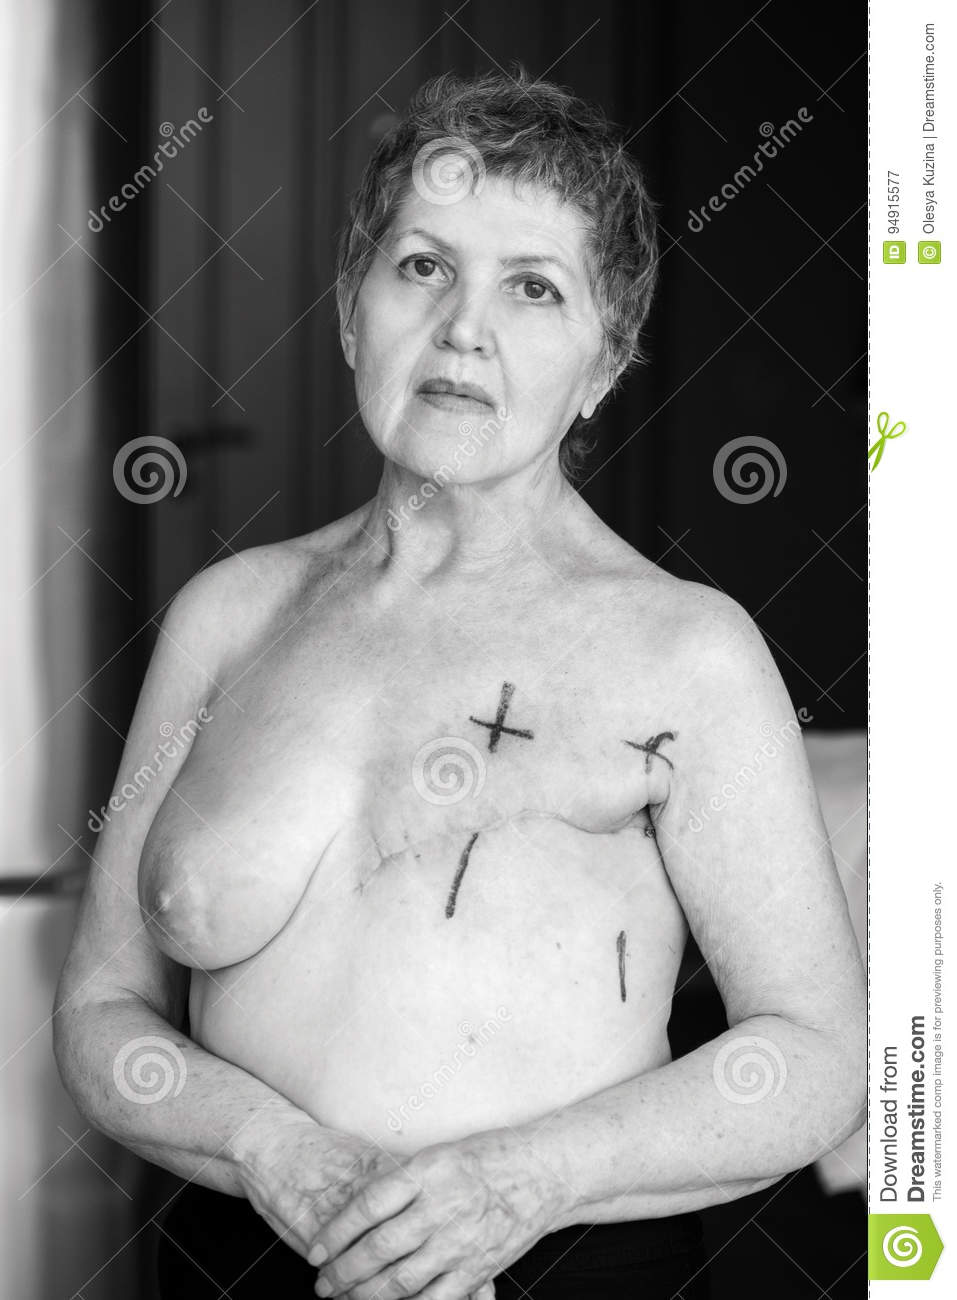 Nude breast cancer portrait